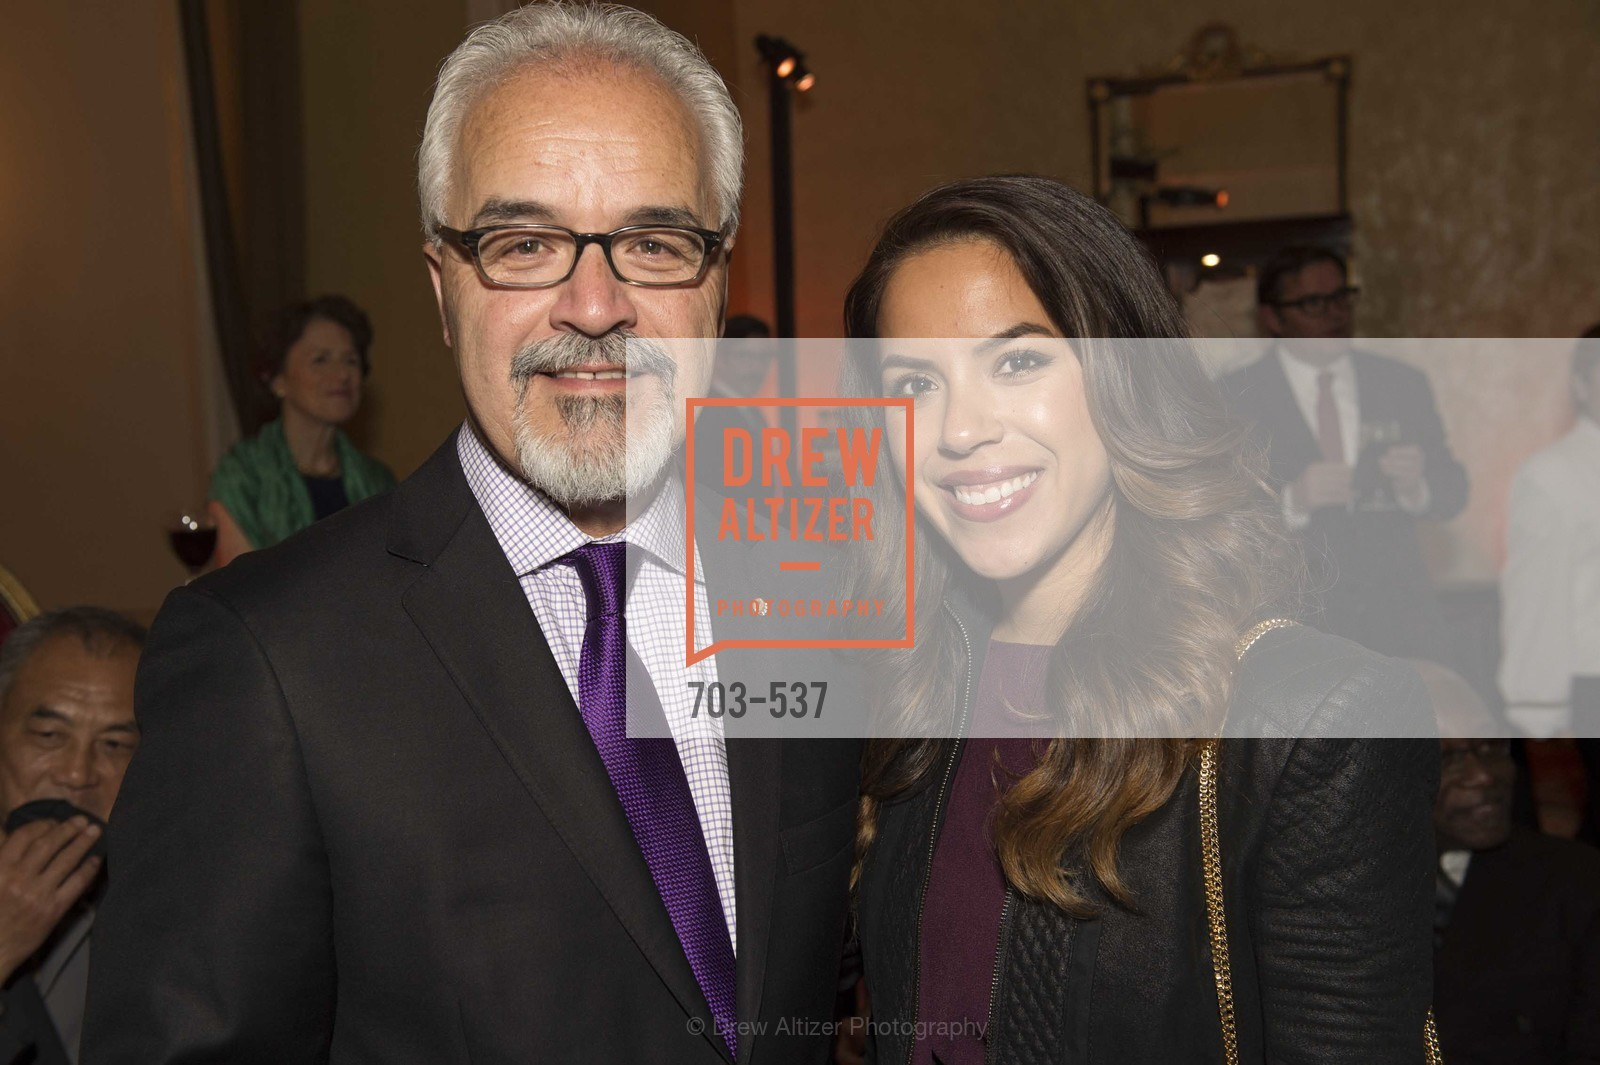 Dan Sotelo, Bianca Sotelo, TOP OF THE MARK'S 75TH Anniversary Party, US, November 7th, 2014,Drew Altizer, Drew Altizer Photography, full-service event agency, private events, San Francisco photographer, photographer California